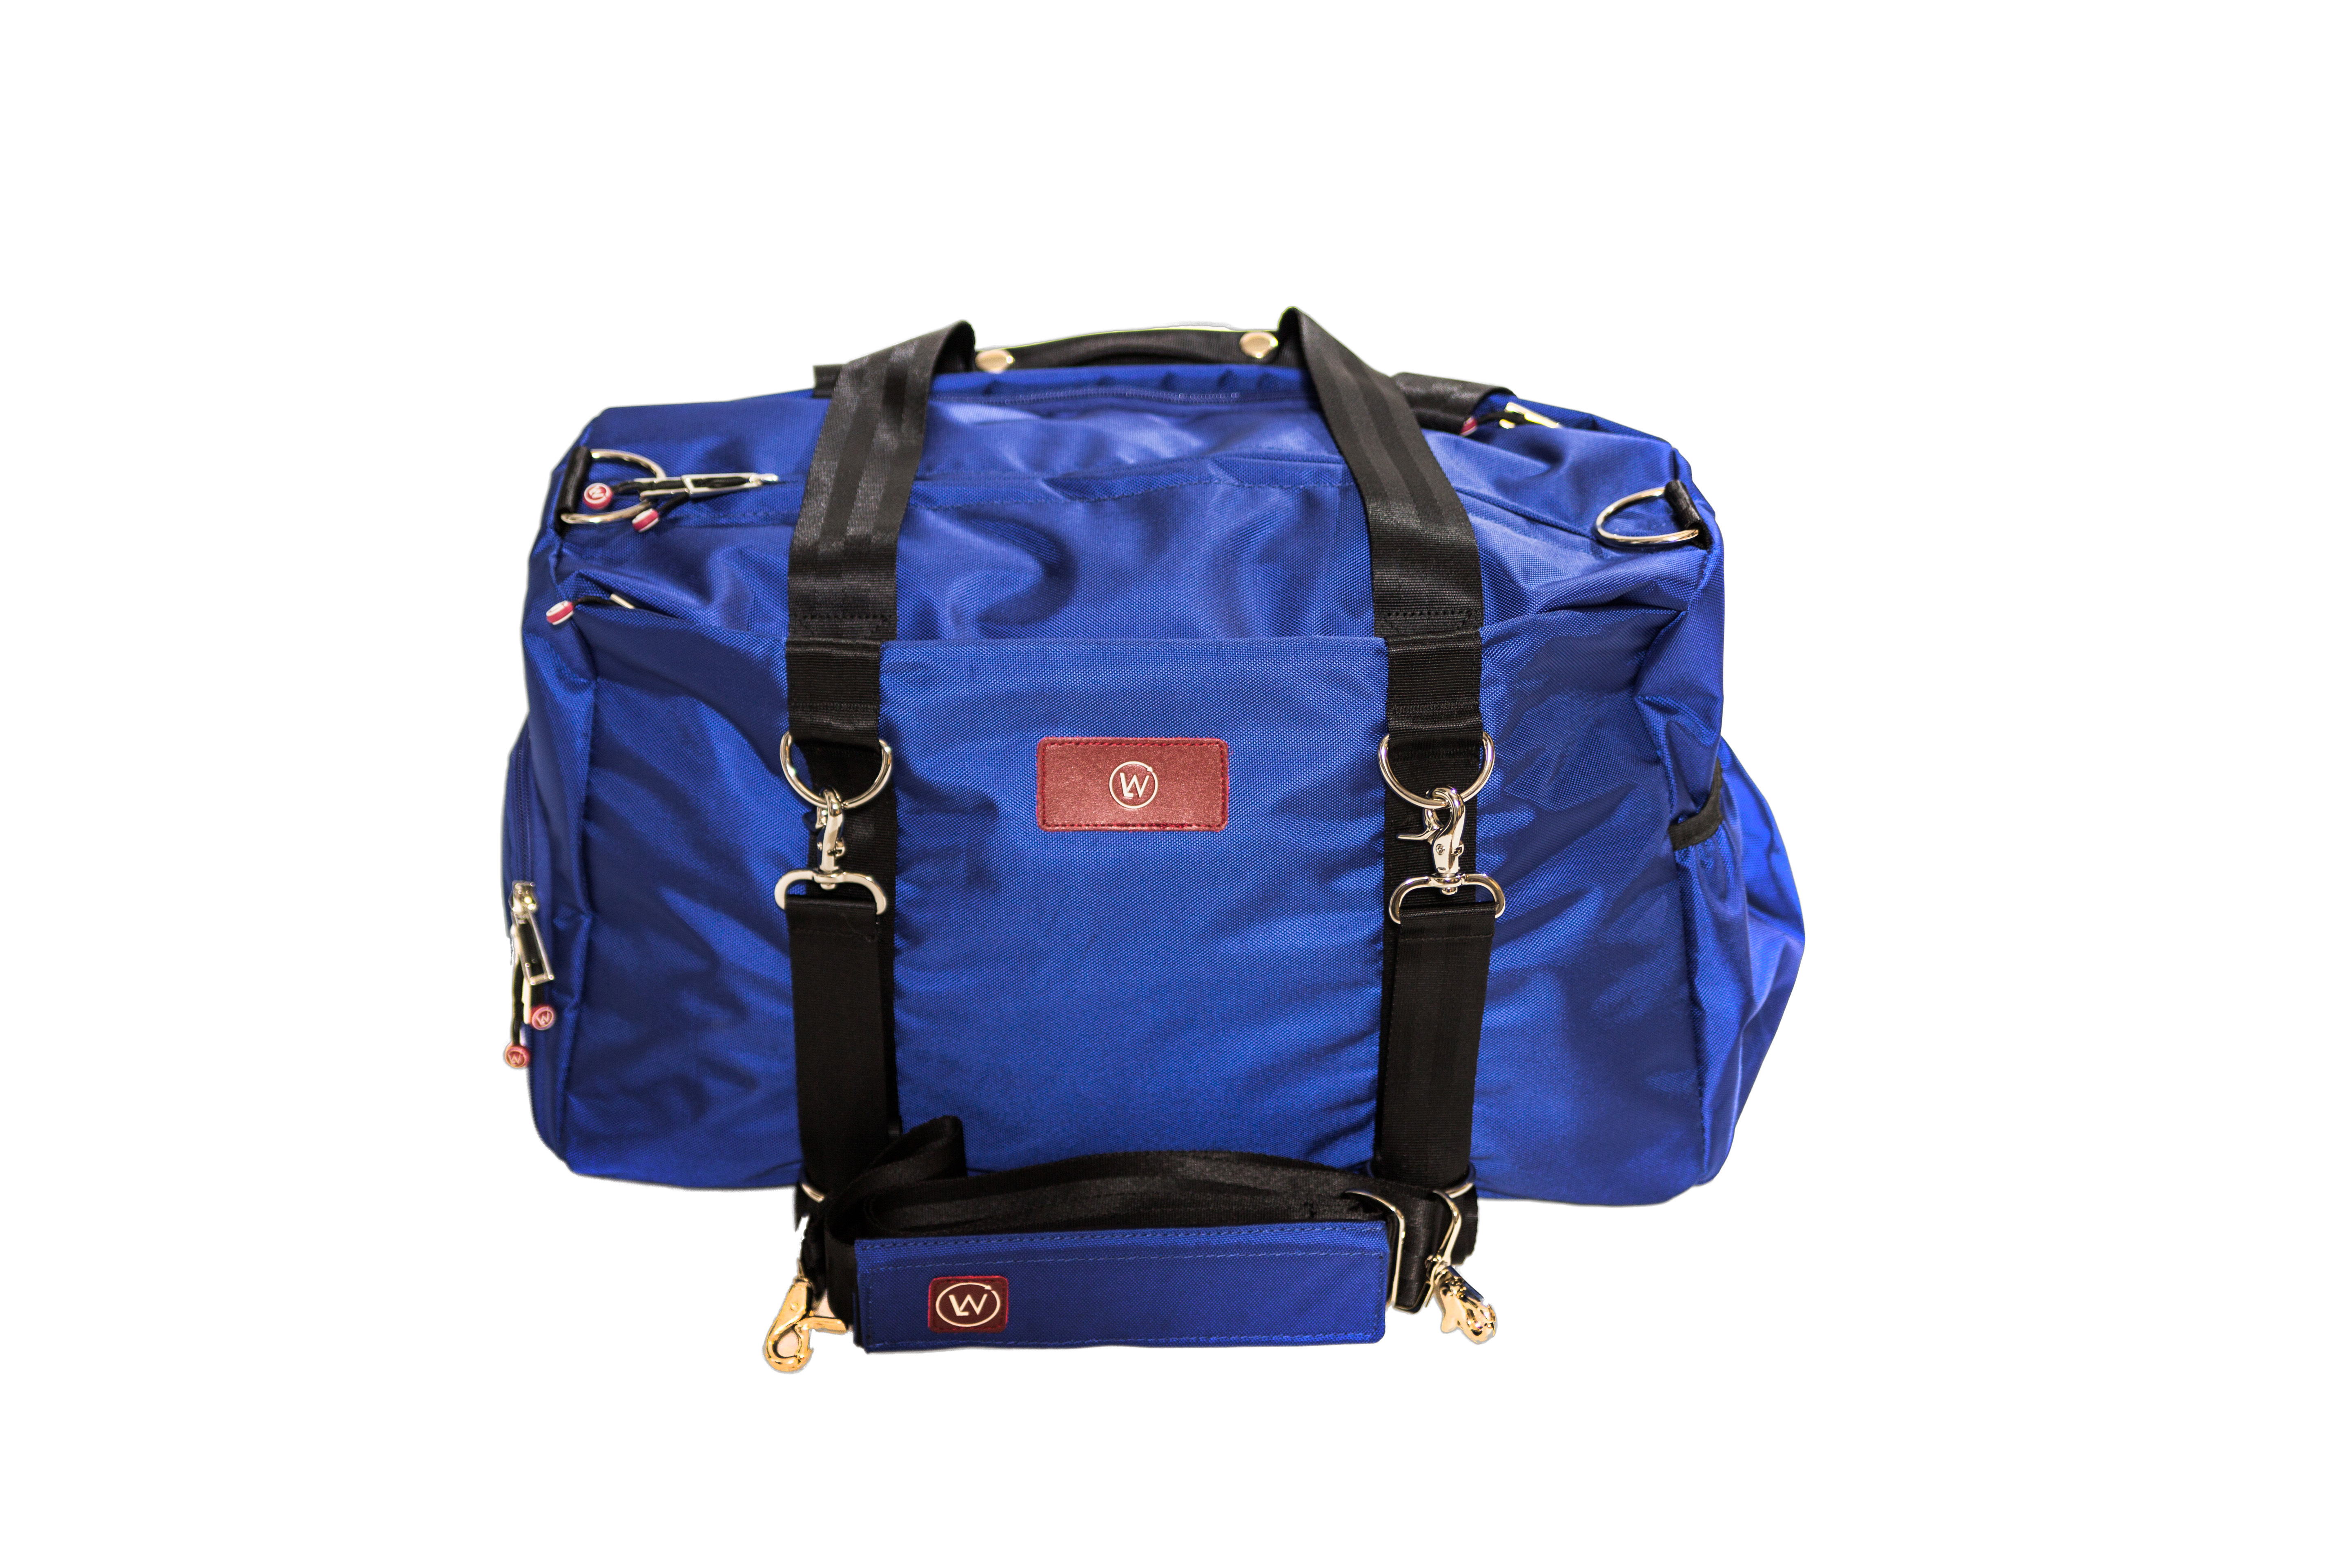 4568b90aaa46 Good Gym Bags With More Than On Inner Pocket